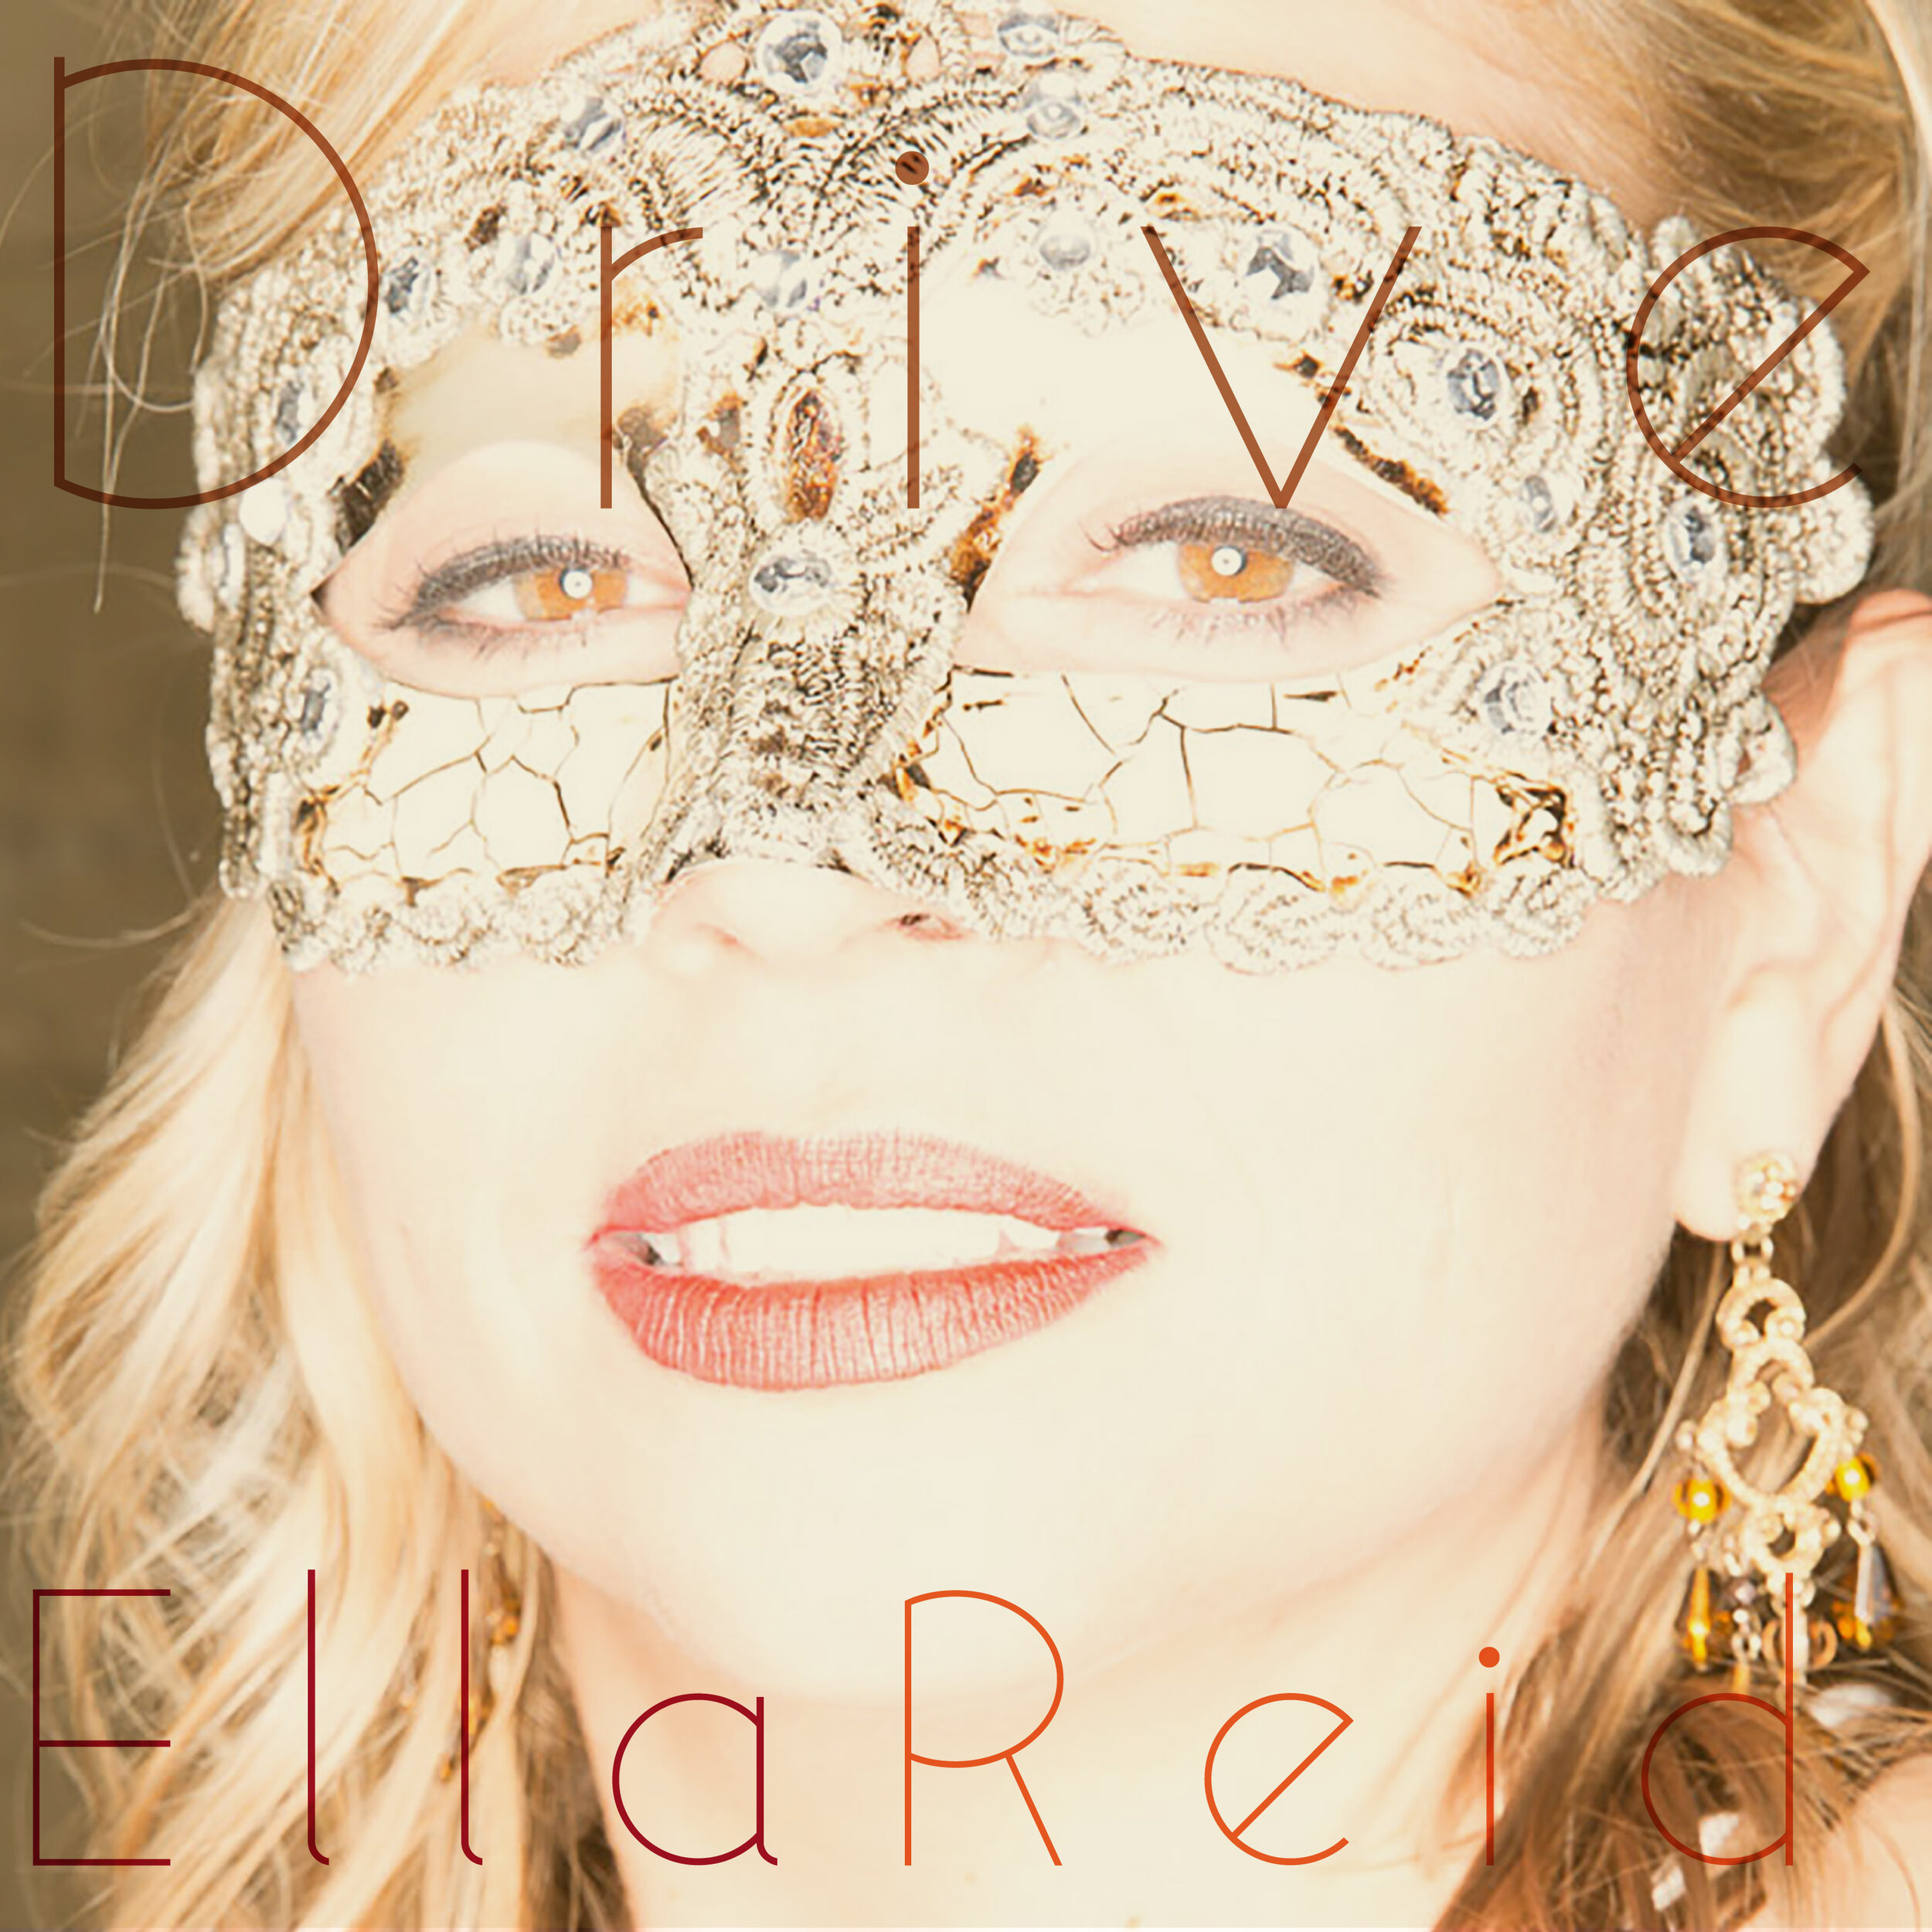 New-Drive-Artwork 2.jpg